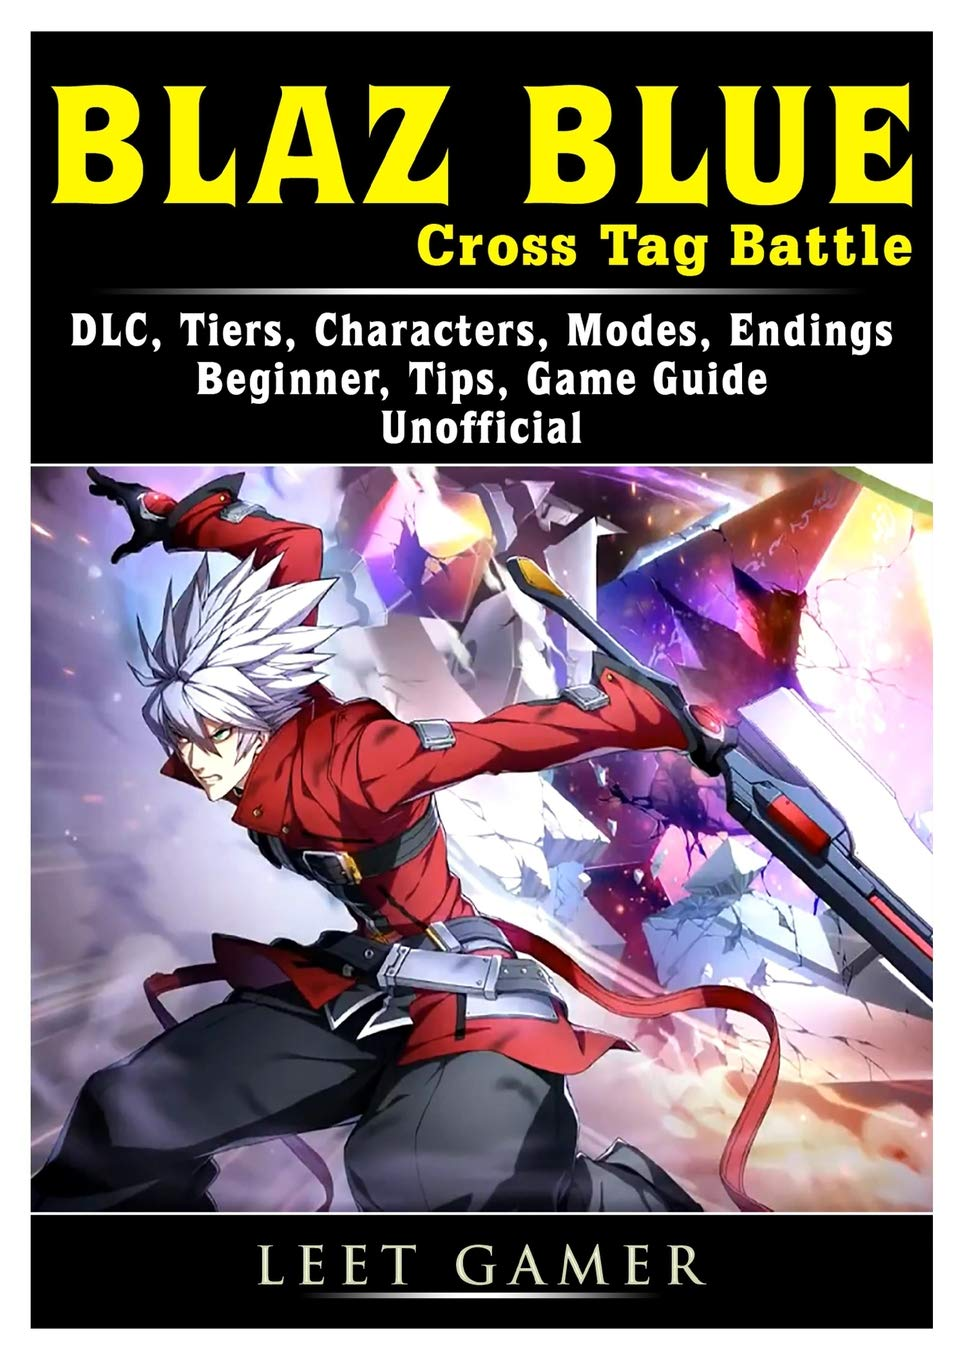 Blaz Blue Cross Tag Battle, DLC, Tiers, Characters, Modes